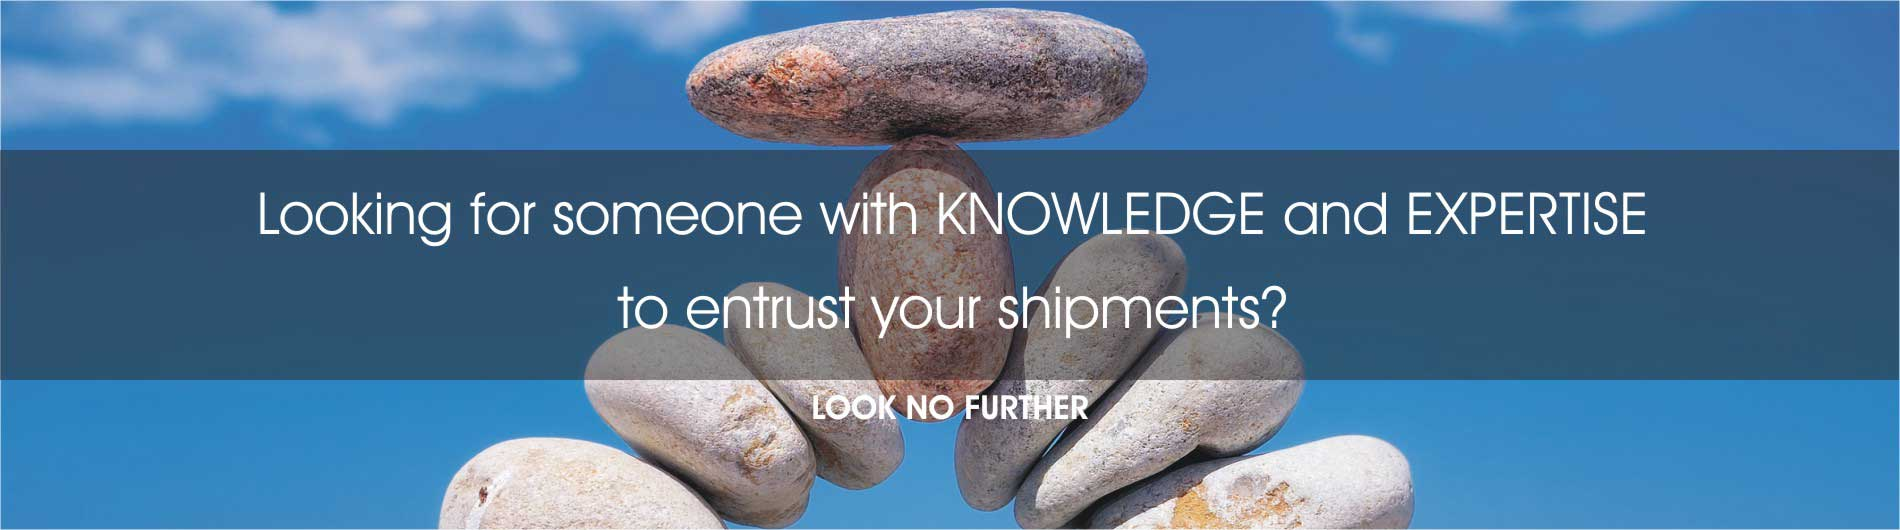 call-to-action2a-knowledge-expertise-shipment